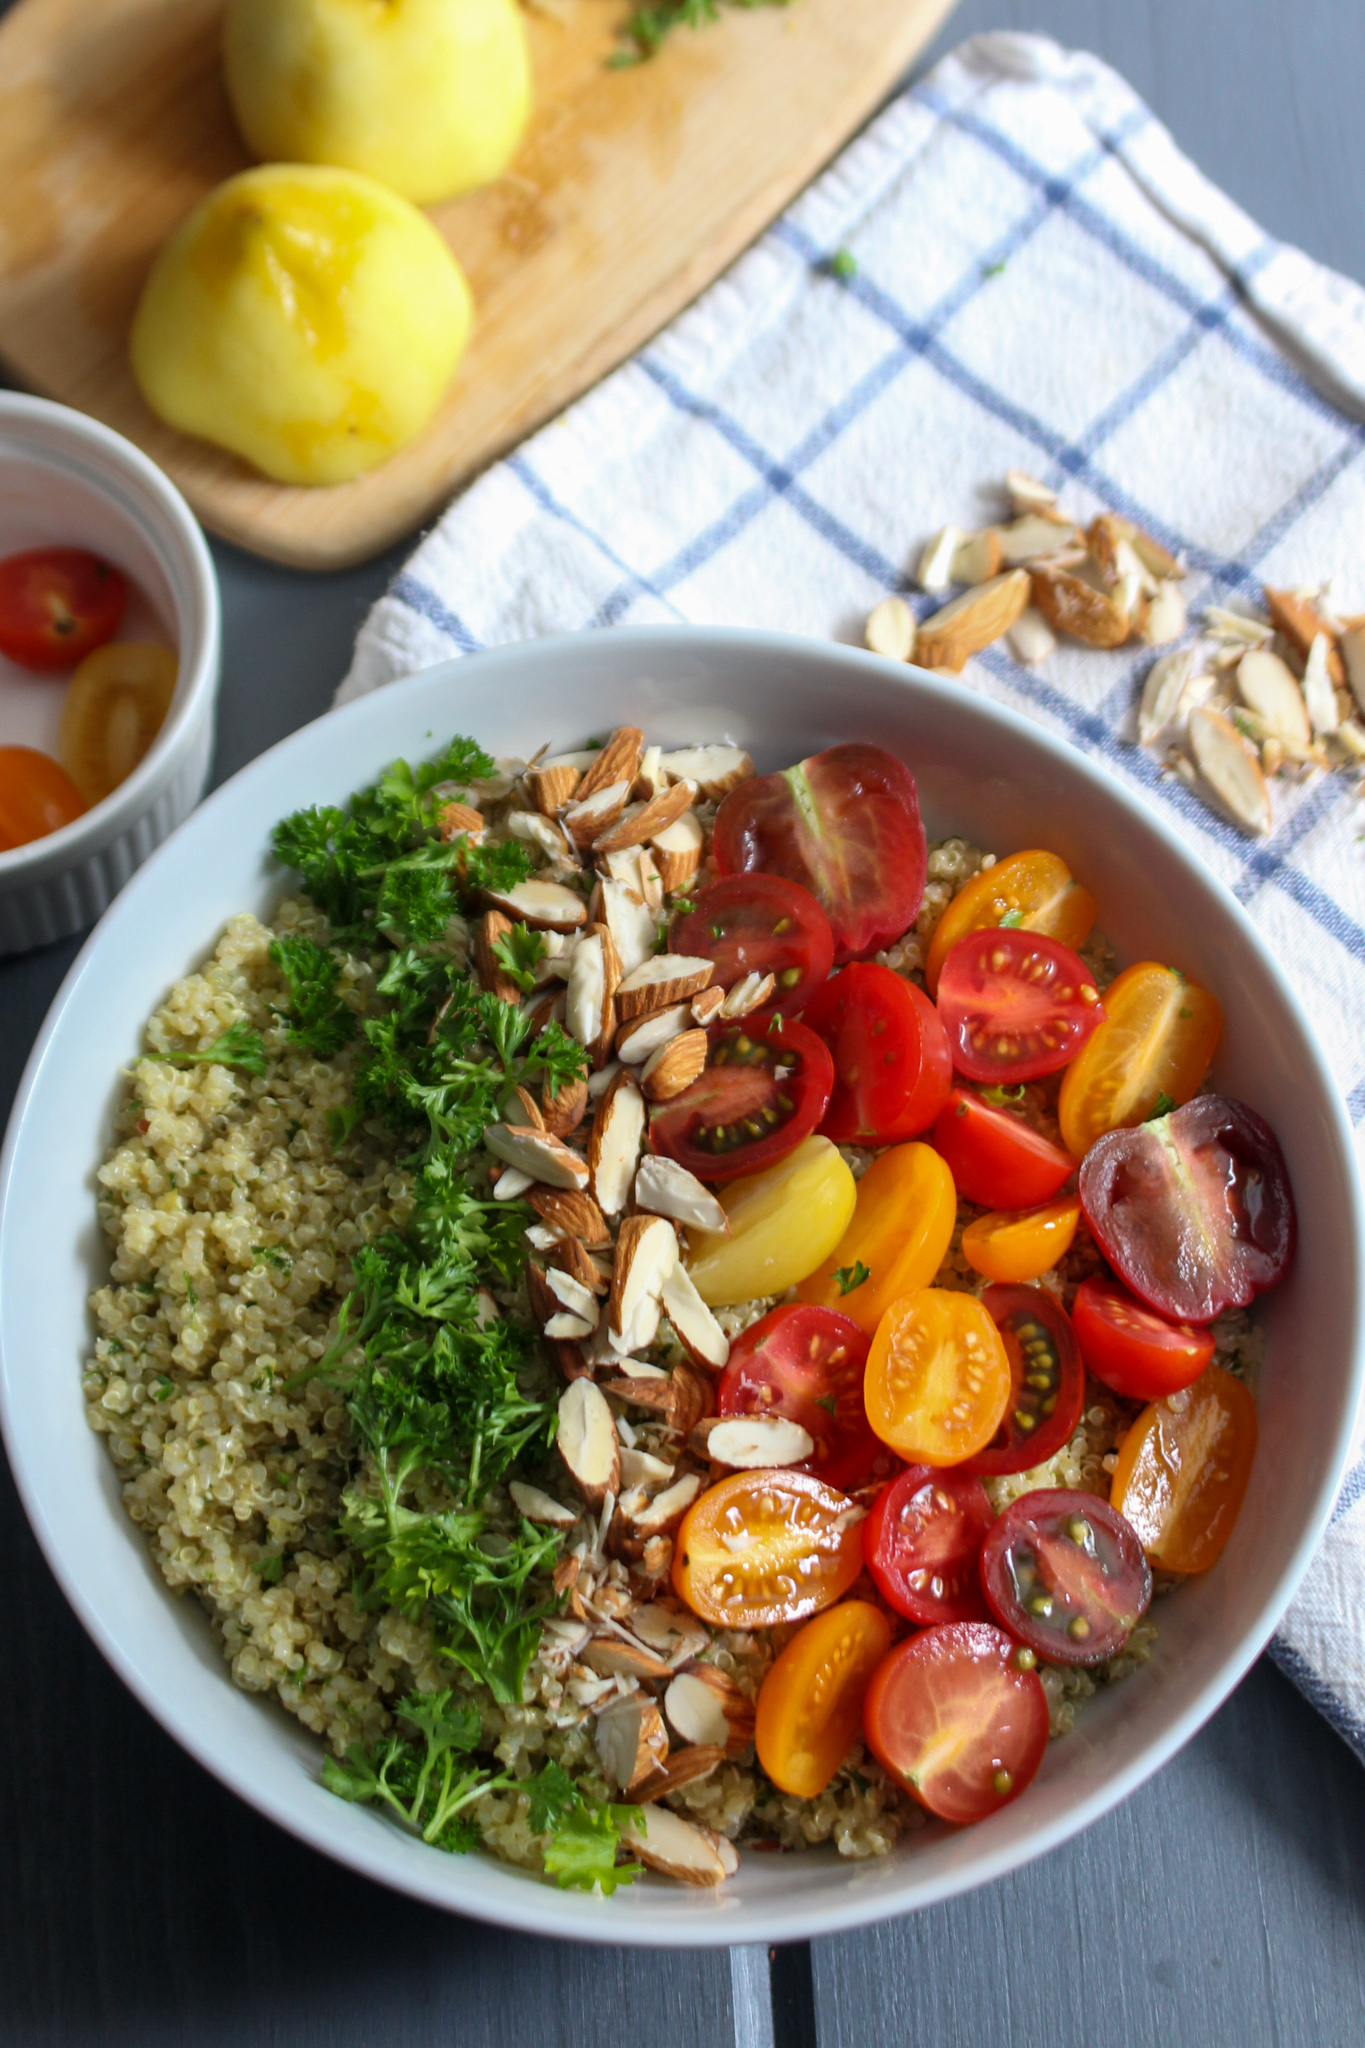 Quinoa salad with parsley, almonds, heirloom tomatoes, and a lemon.